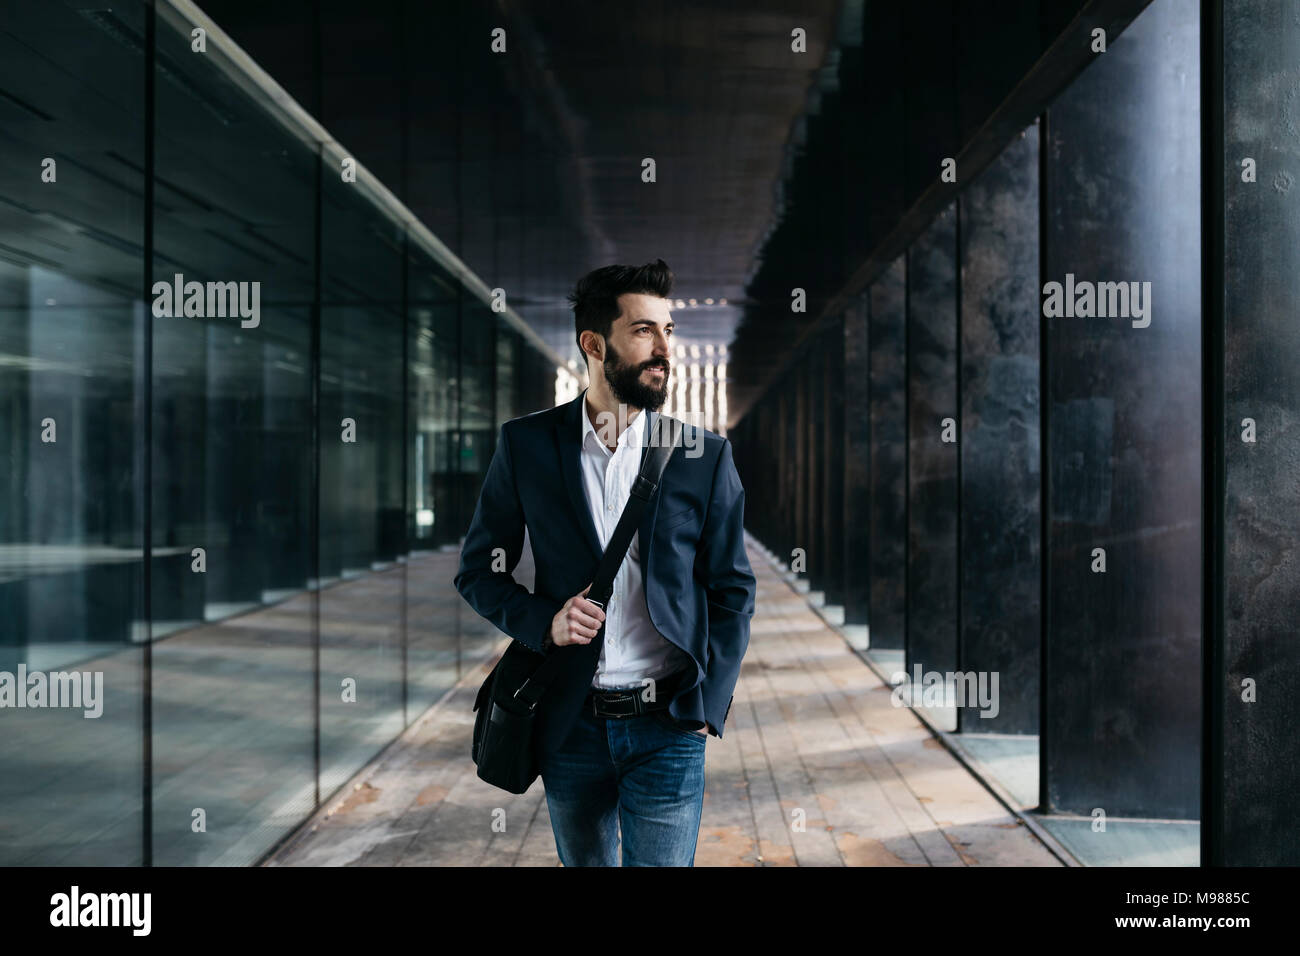 Businessman walking le long d'arcade Photo Stock